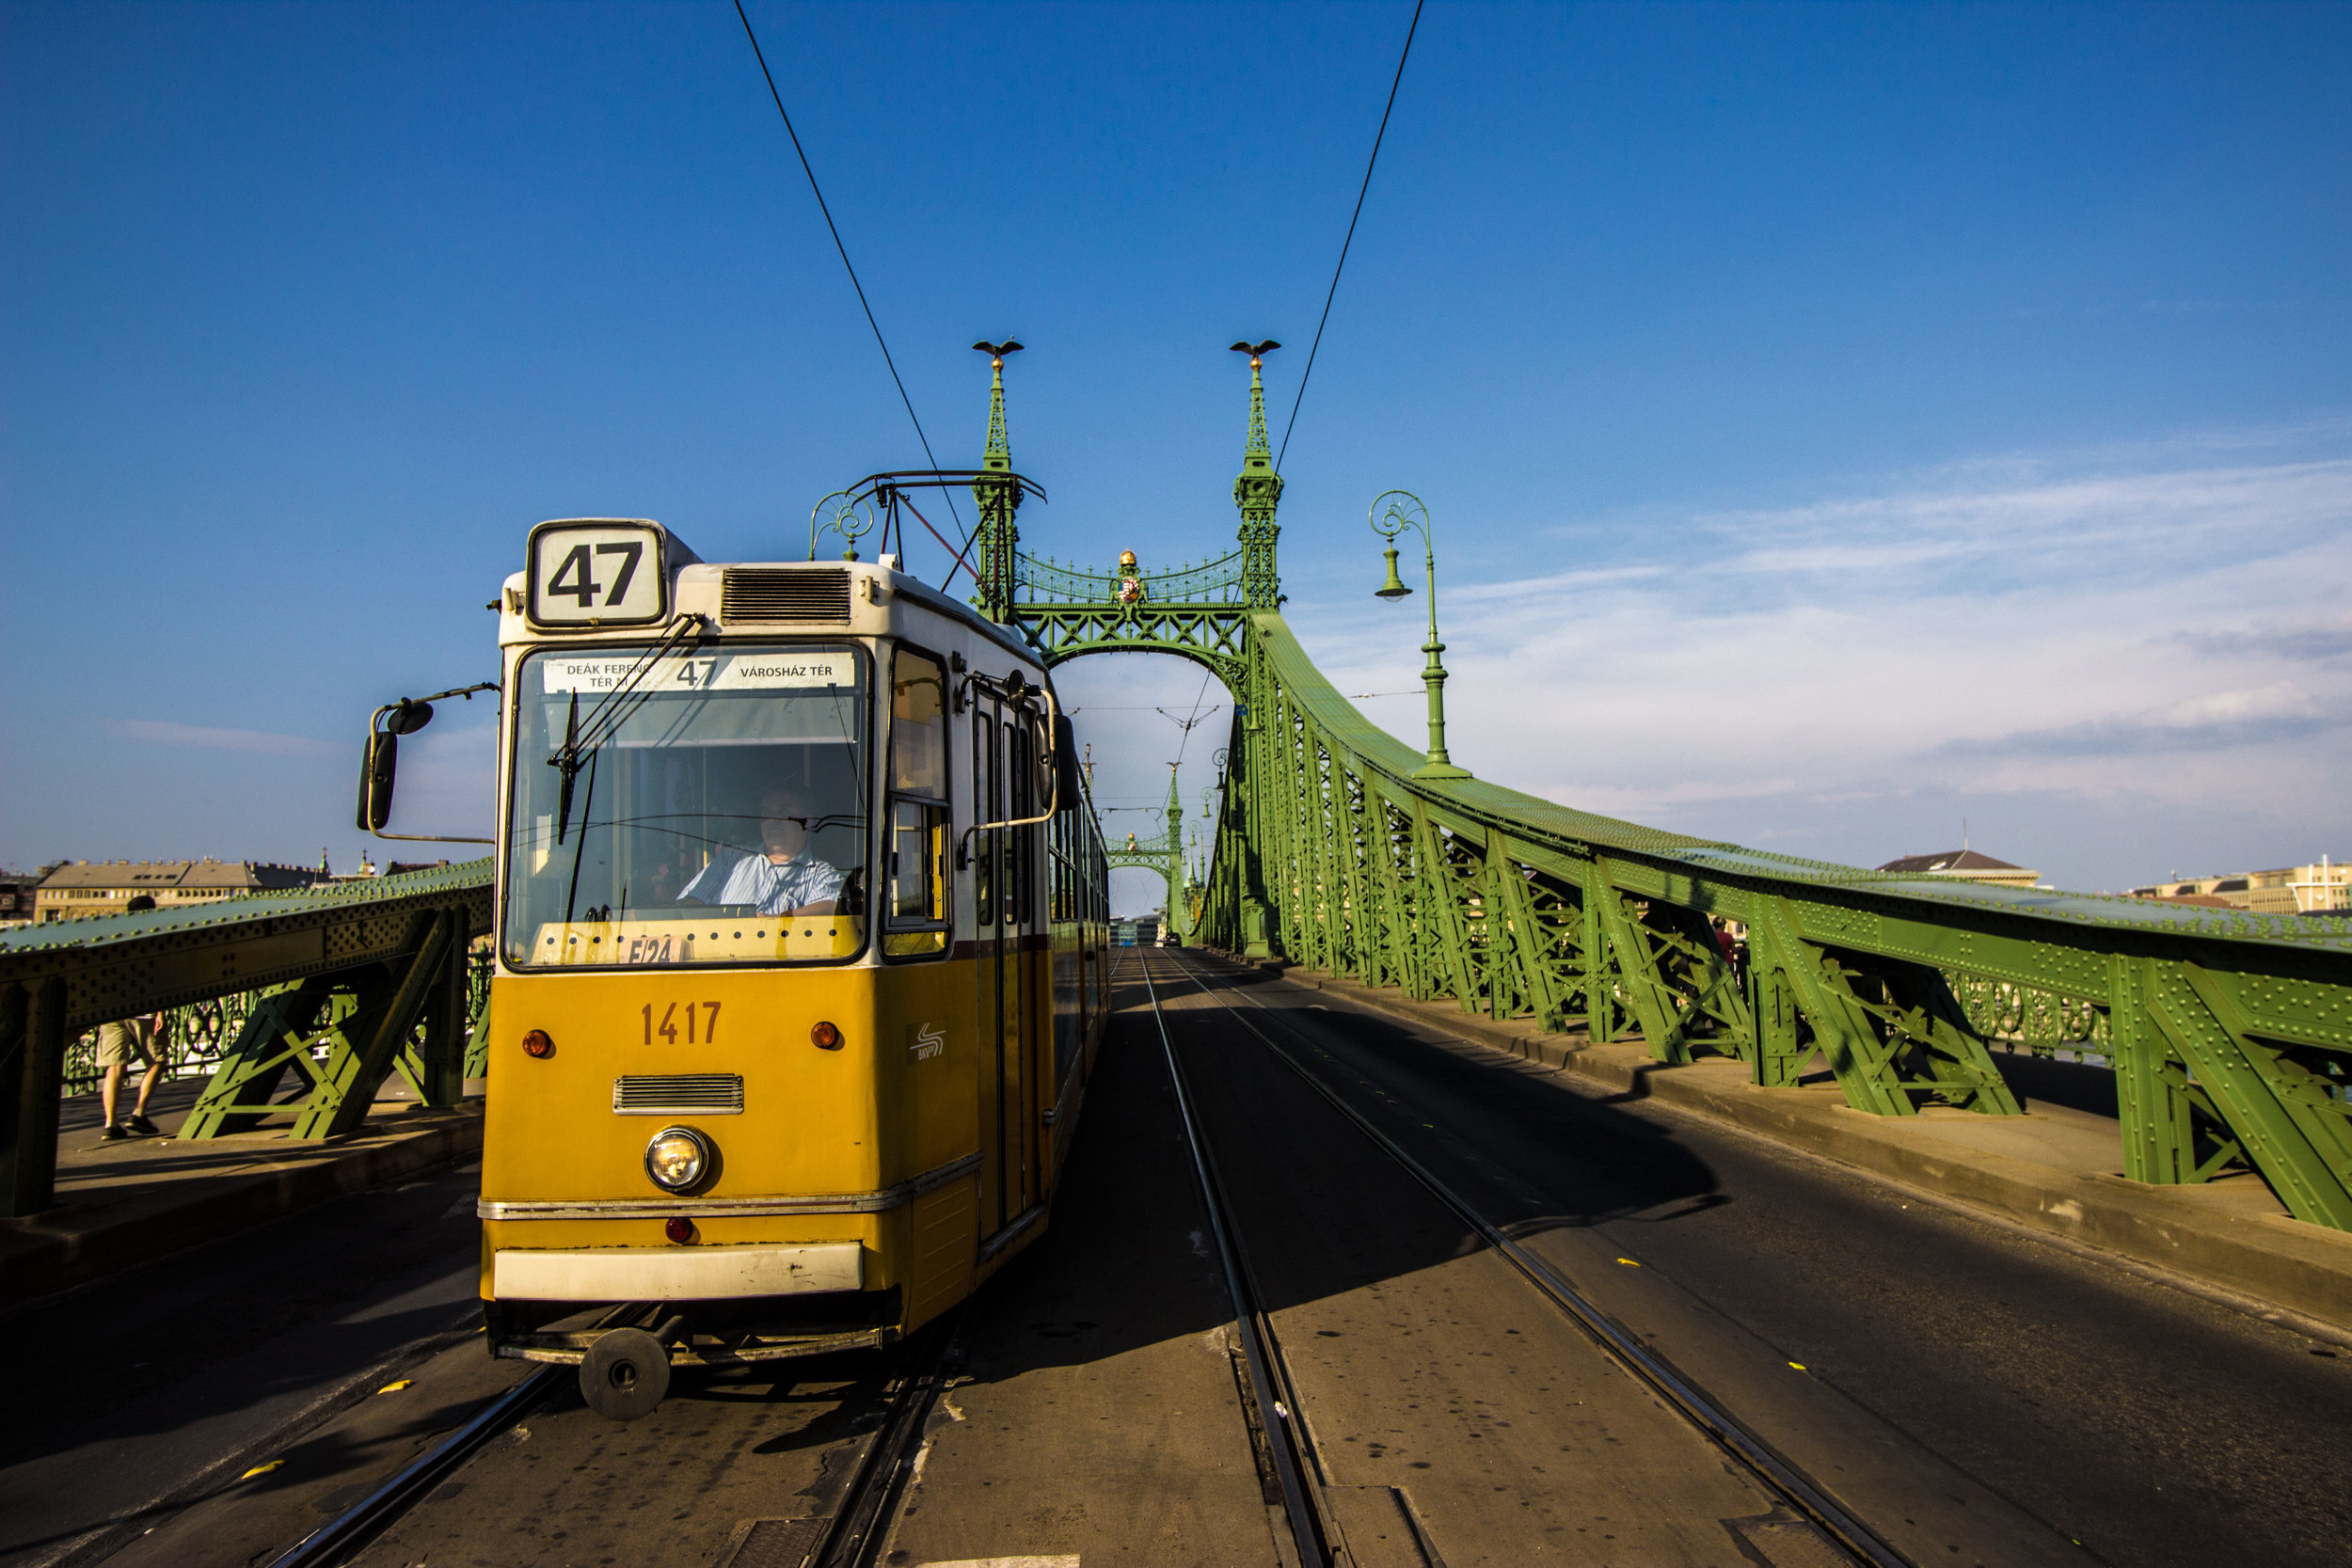 Tram 47 crossing the Freedom Bridge at the Gellért intersection.